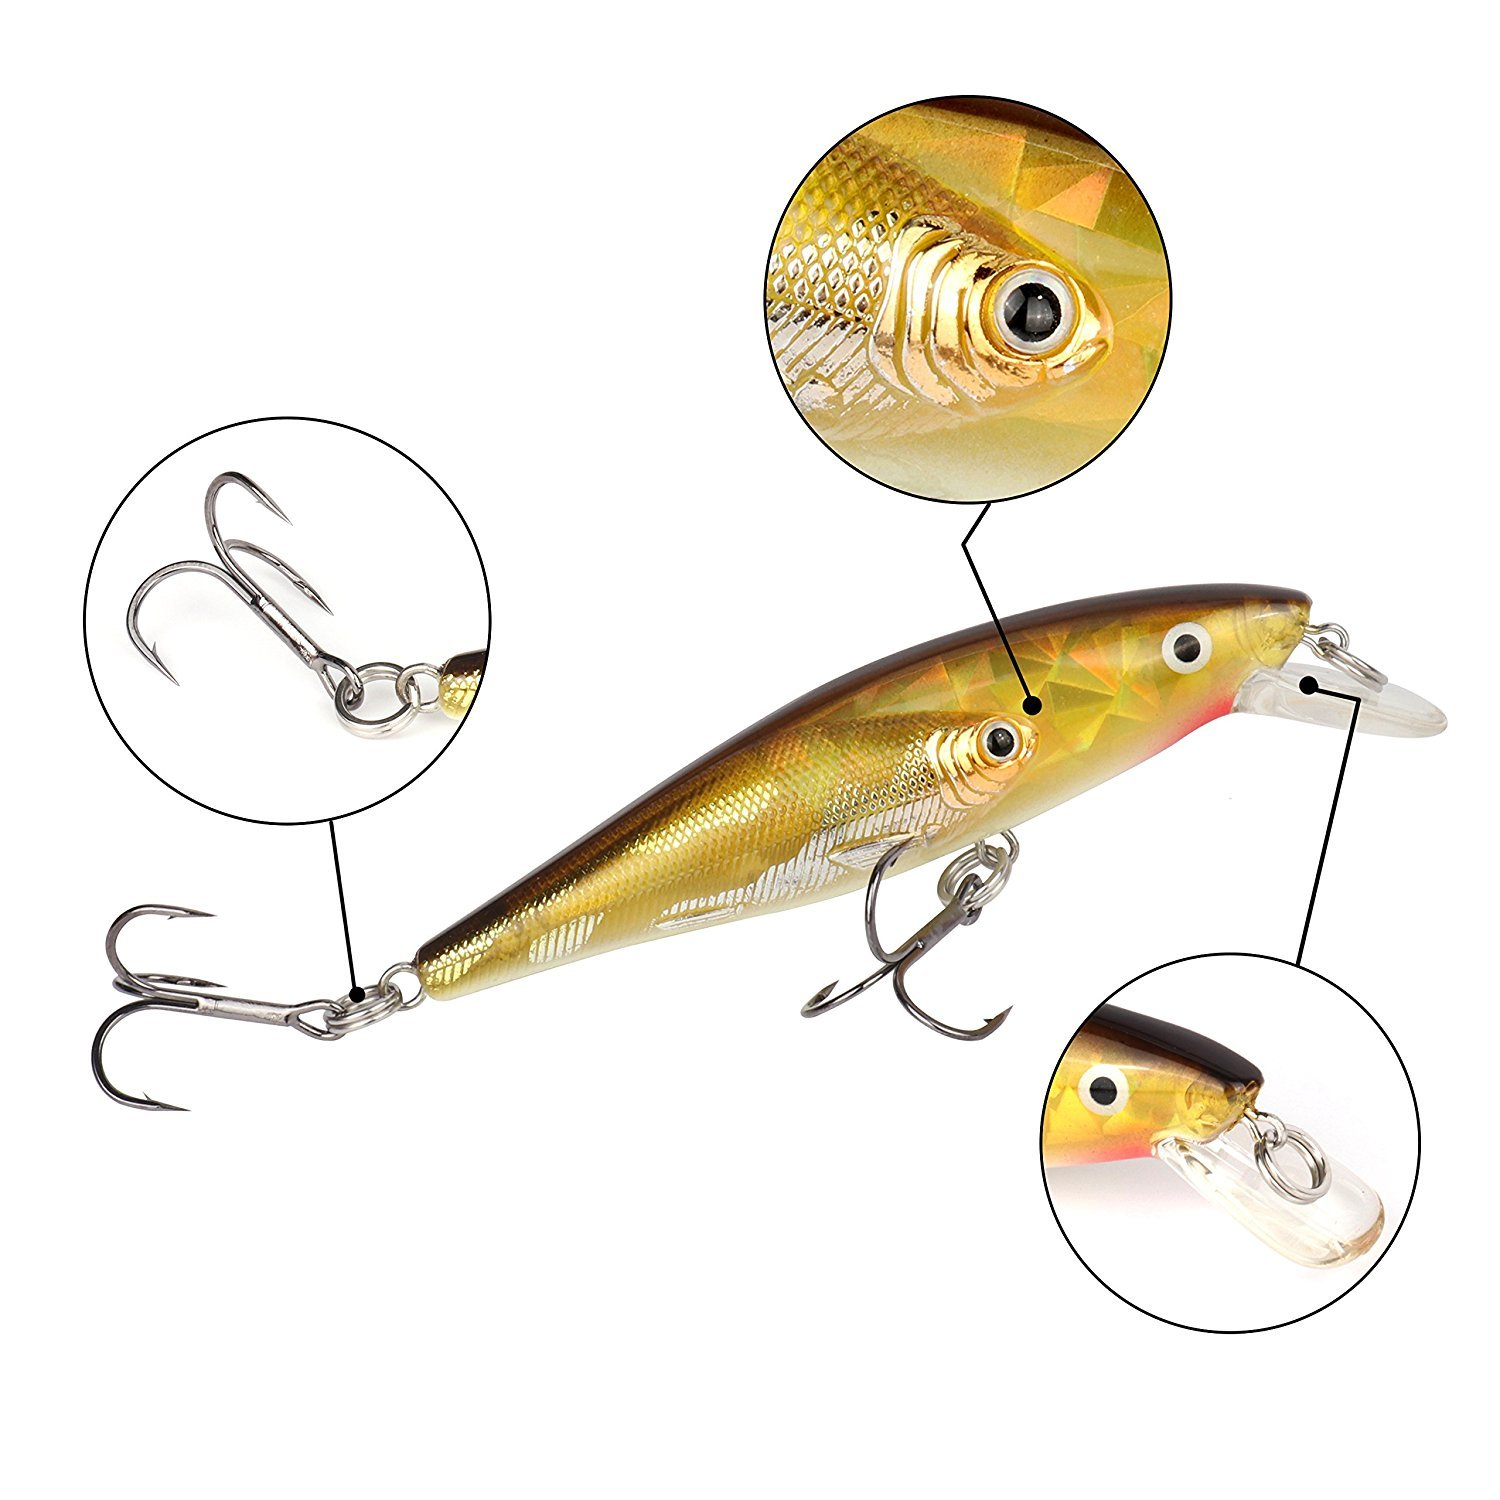 1500x1500 Fishing Lures